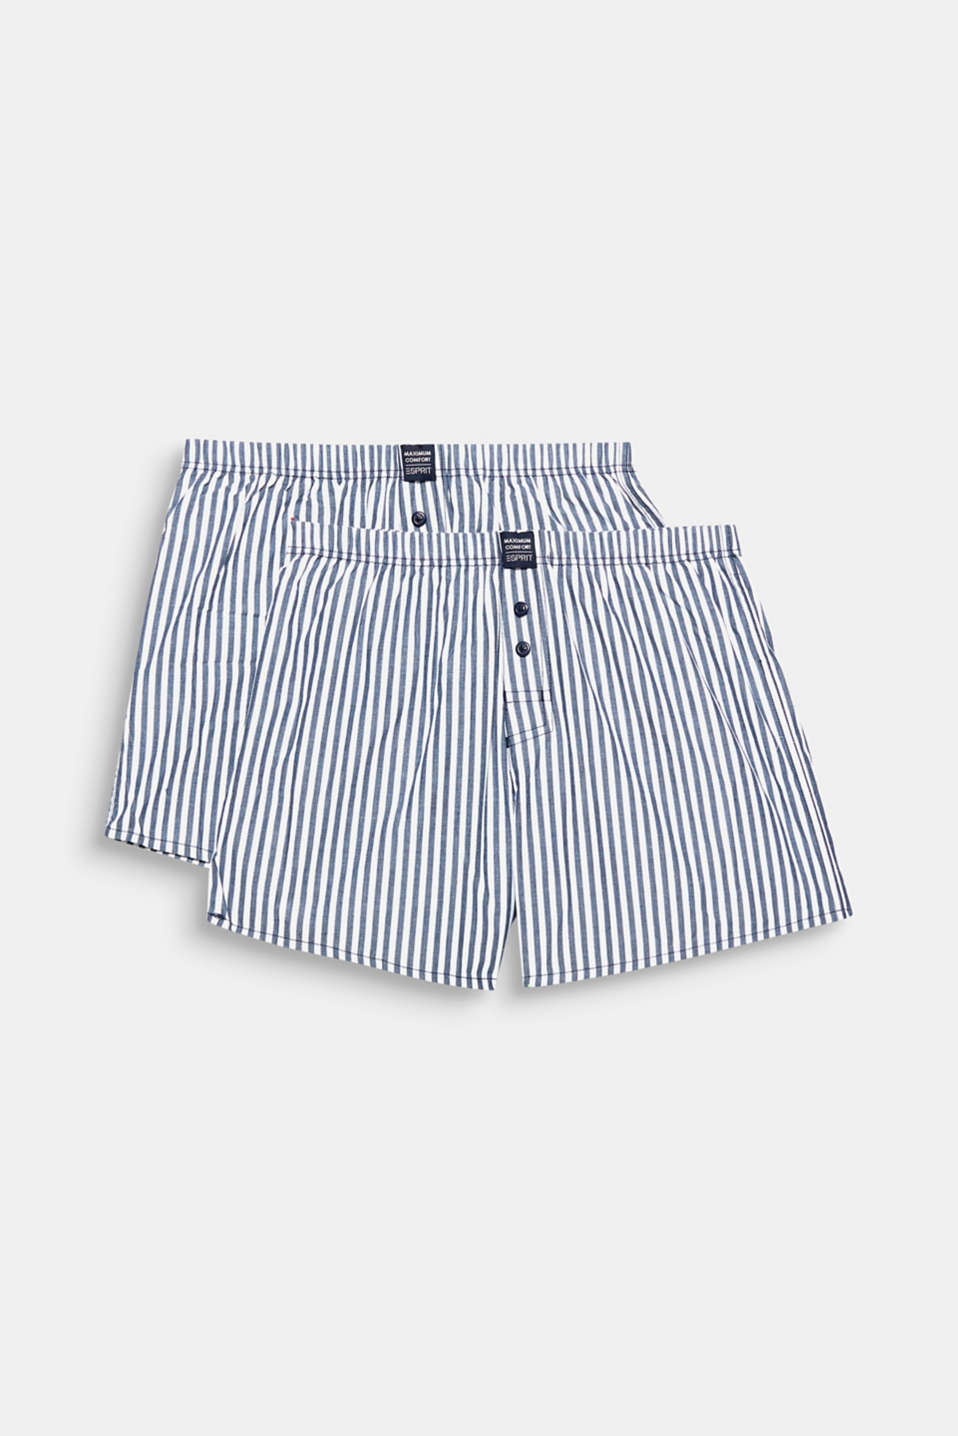 Woven shorts in a double pack, 100% cotton, NAVY, detail image number 3